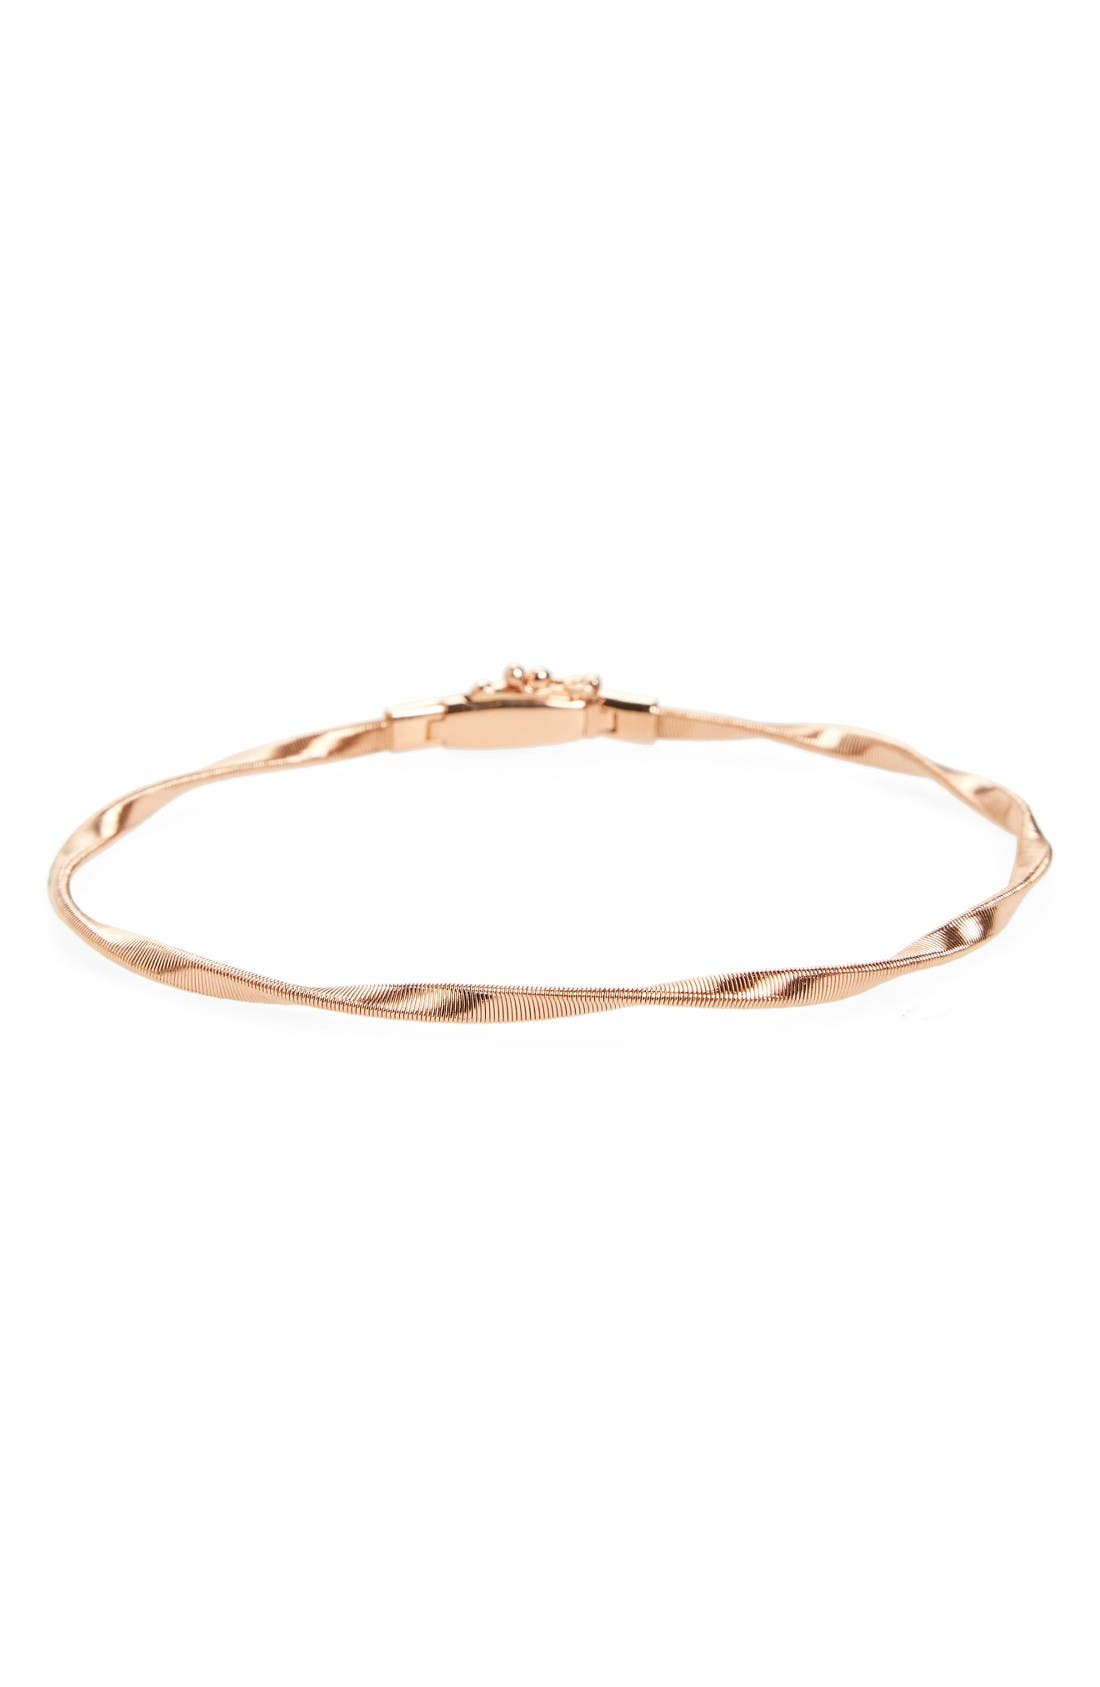 Main Image - Marco Bicego 'Marrakech' Single Strand Bracelet